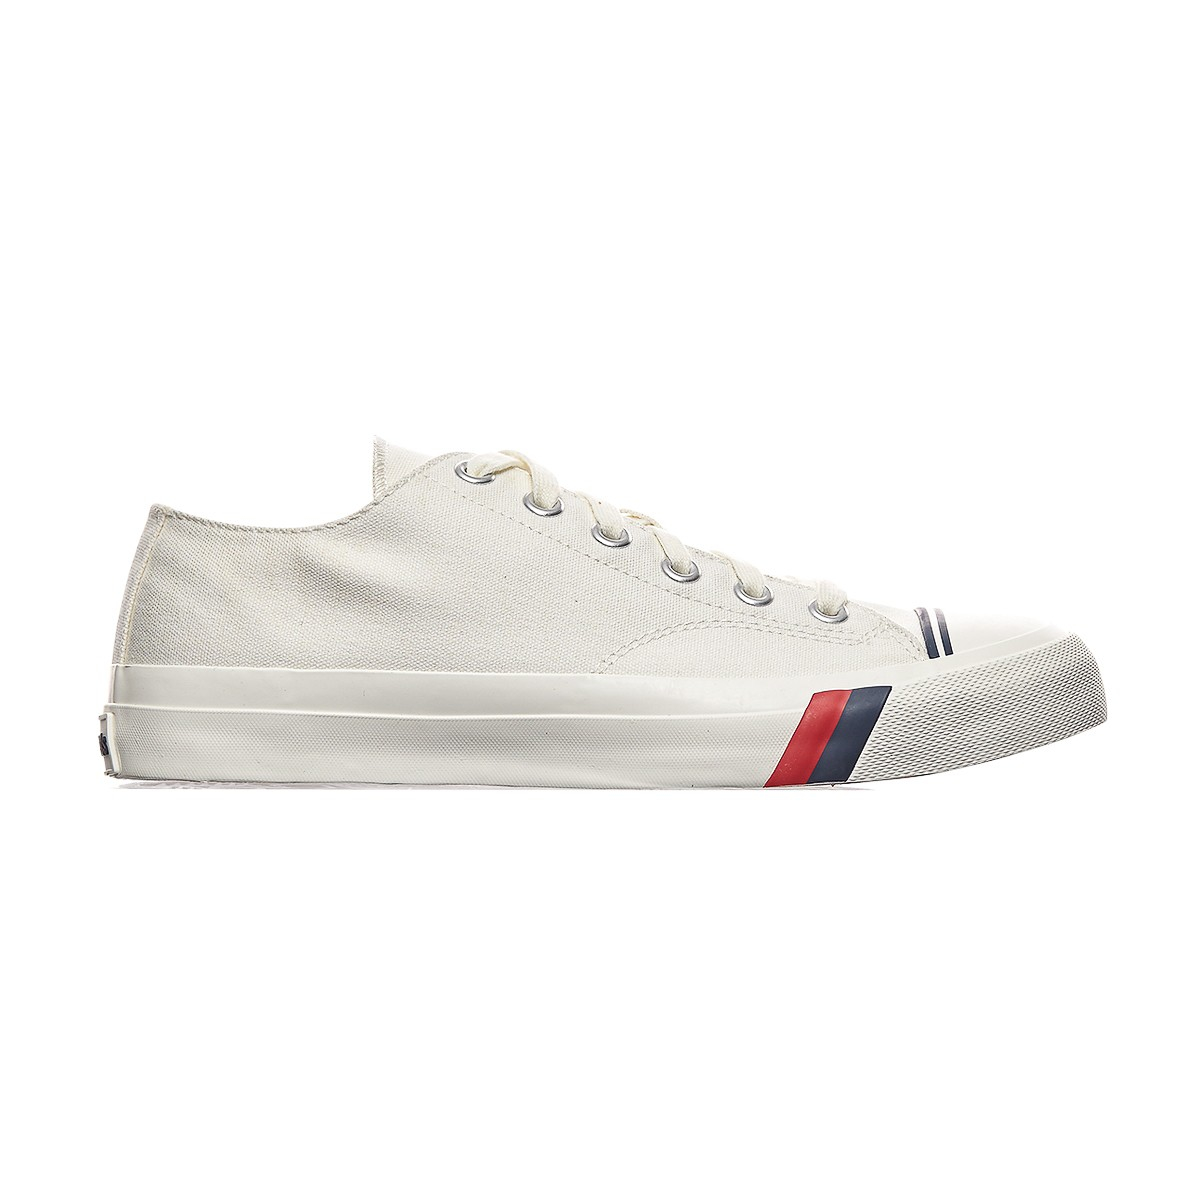 pro-keds mens royal lo leather sneaker